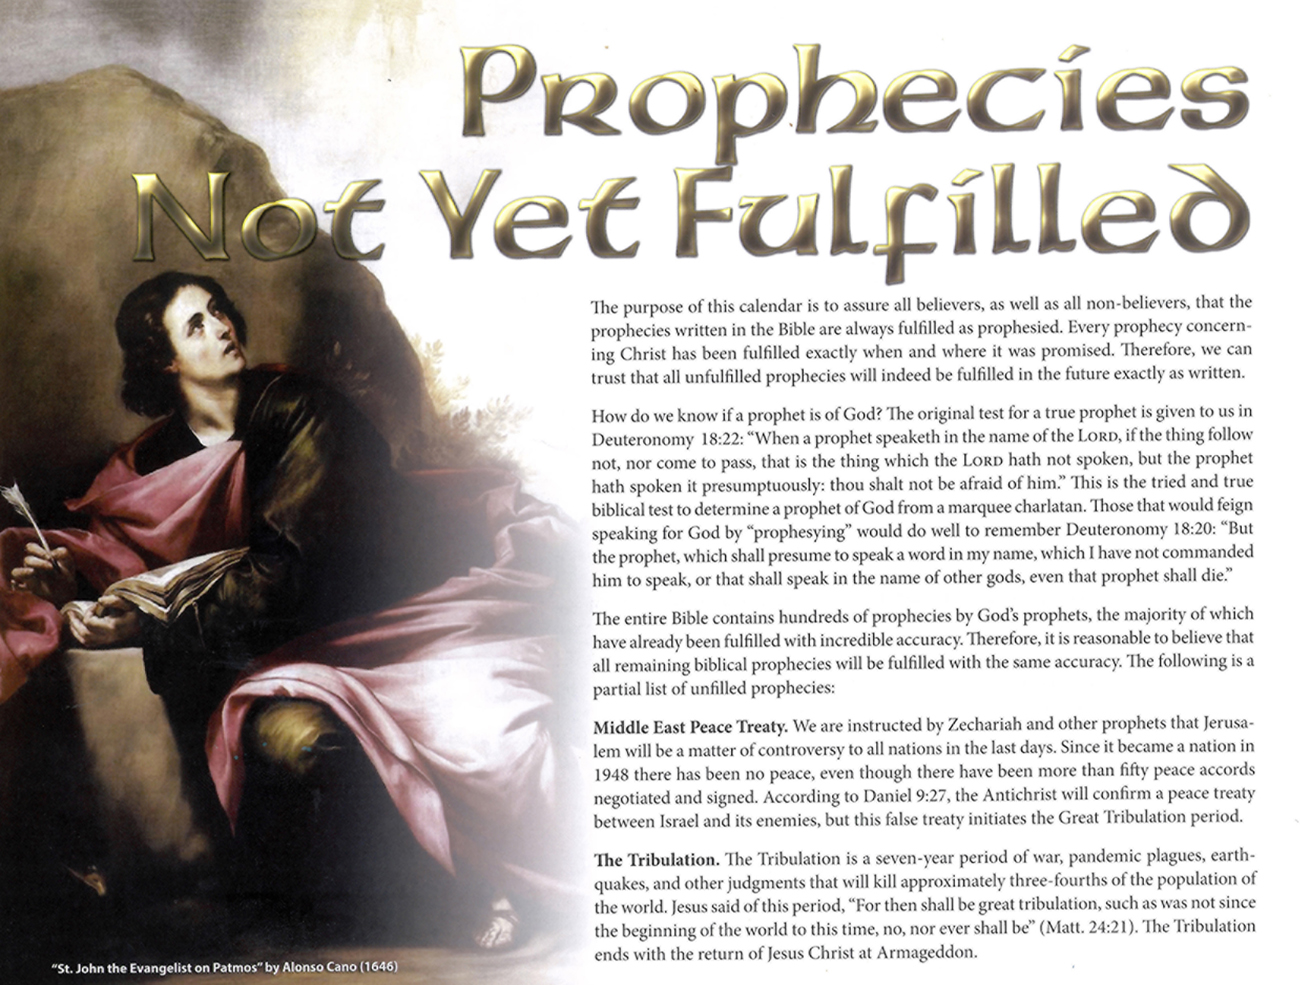 2013 Prophecy Calendar: Prophecies Not Yet Fulfilled